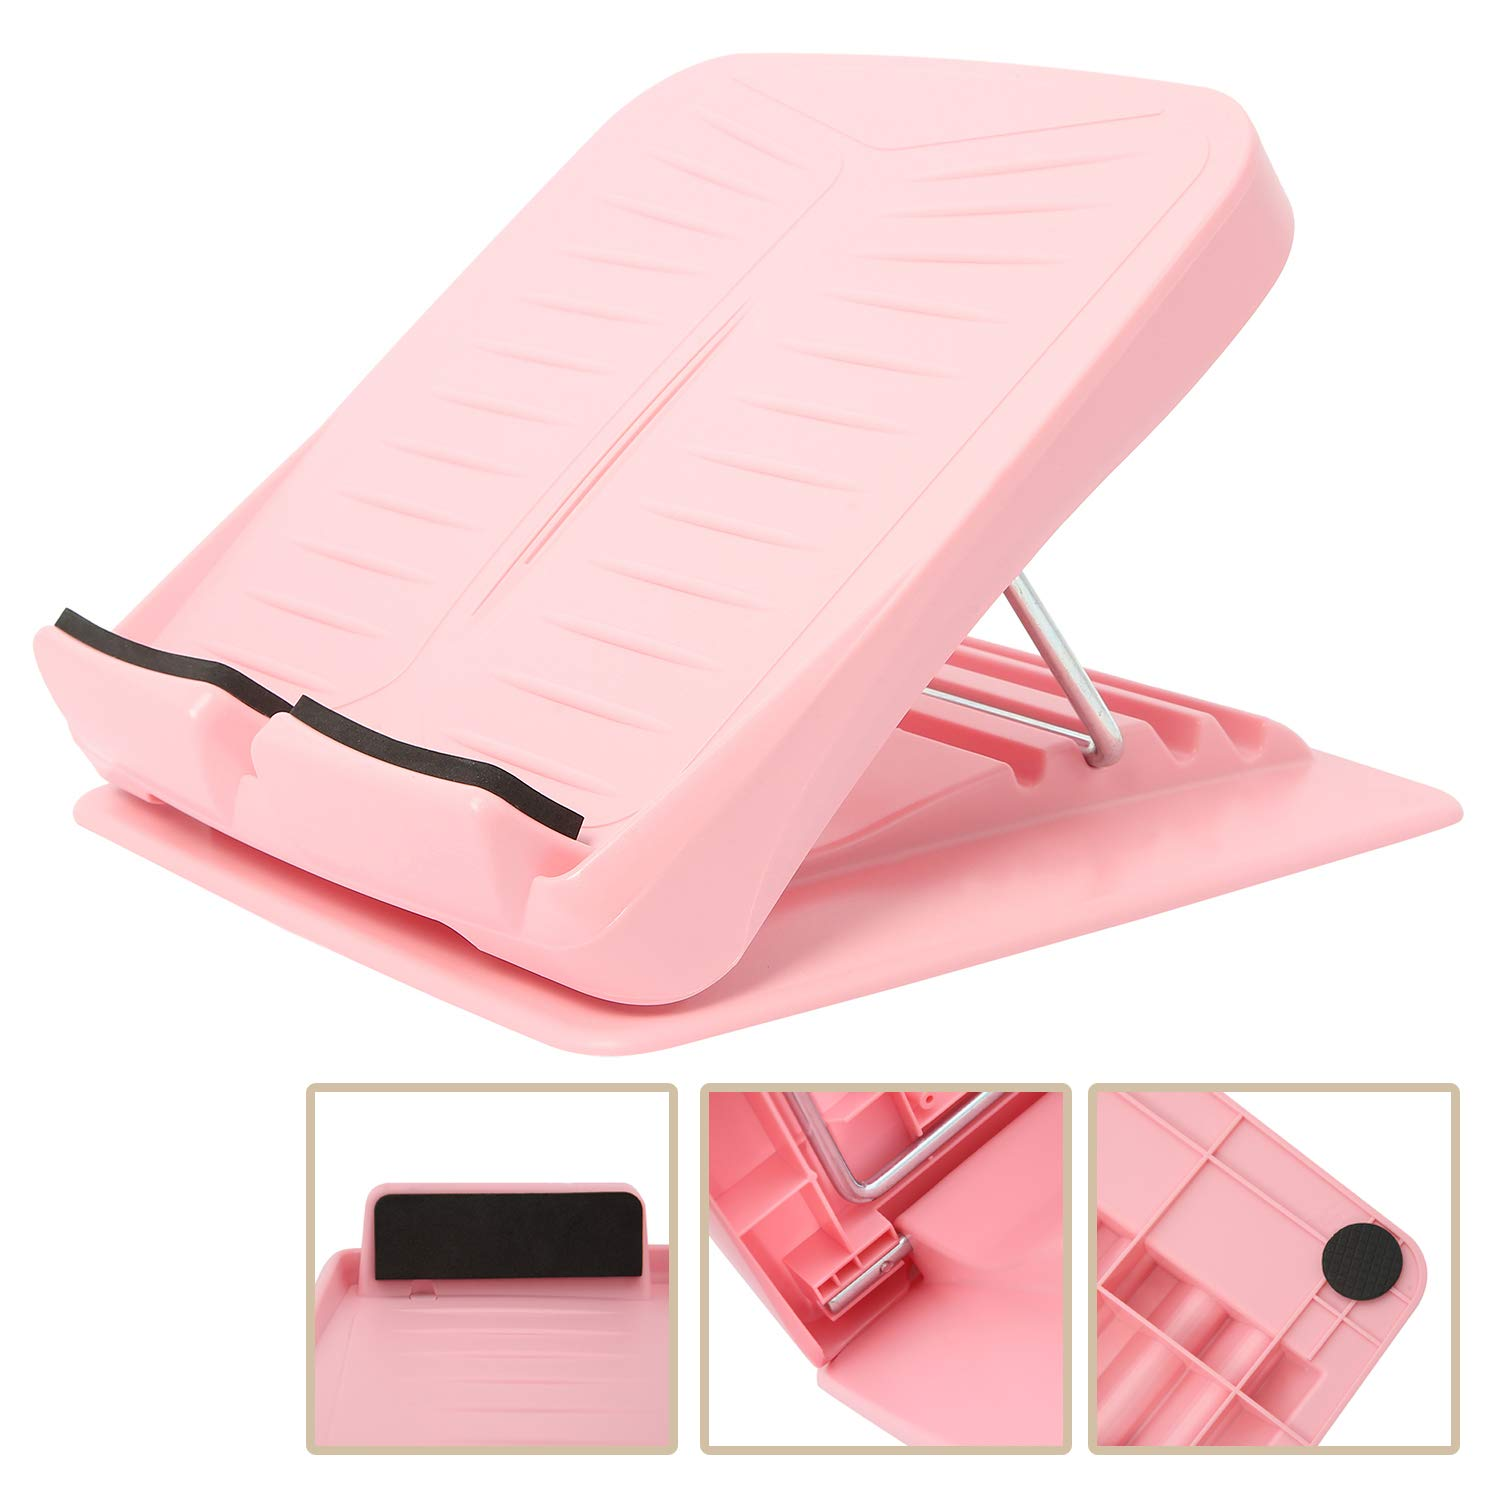 Leg Calves Muscle Exercise Achilles YaeGarden Portable Adjustable Slant Board Calf Stretcher Incline Stretching Board Ankle Therapy Stretch Wedge 5 Position Non-Slip Design for Hamstring Pink